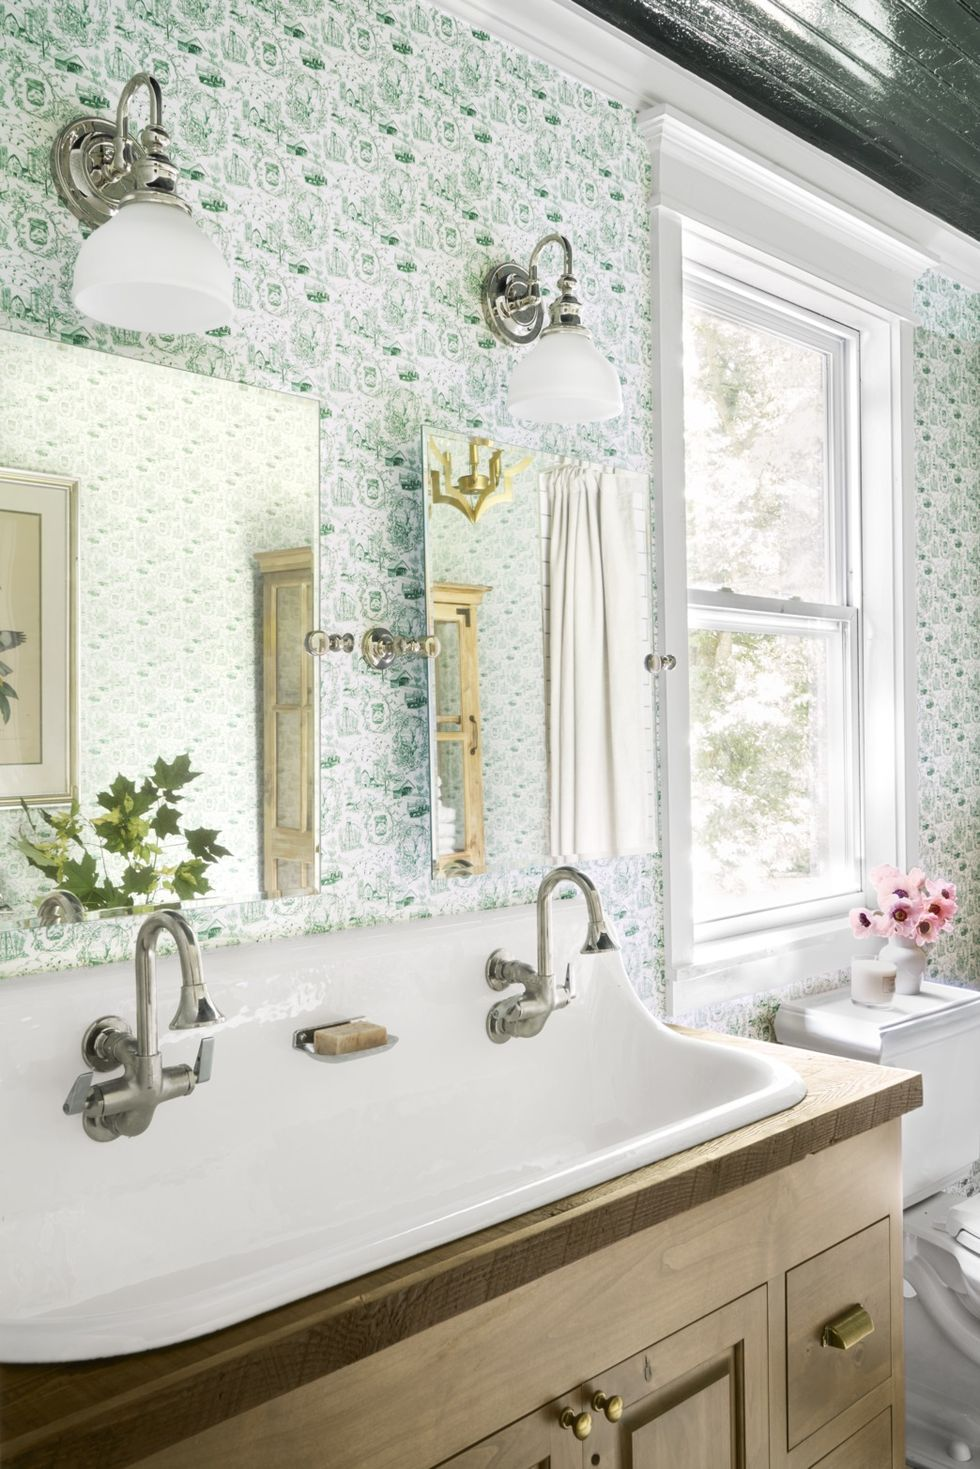 Chrome and Frosted Glass Sconce rustic bathroom lighting ideas with green wallpaper and double sink